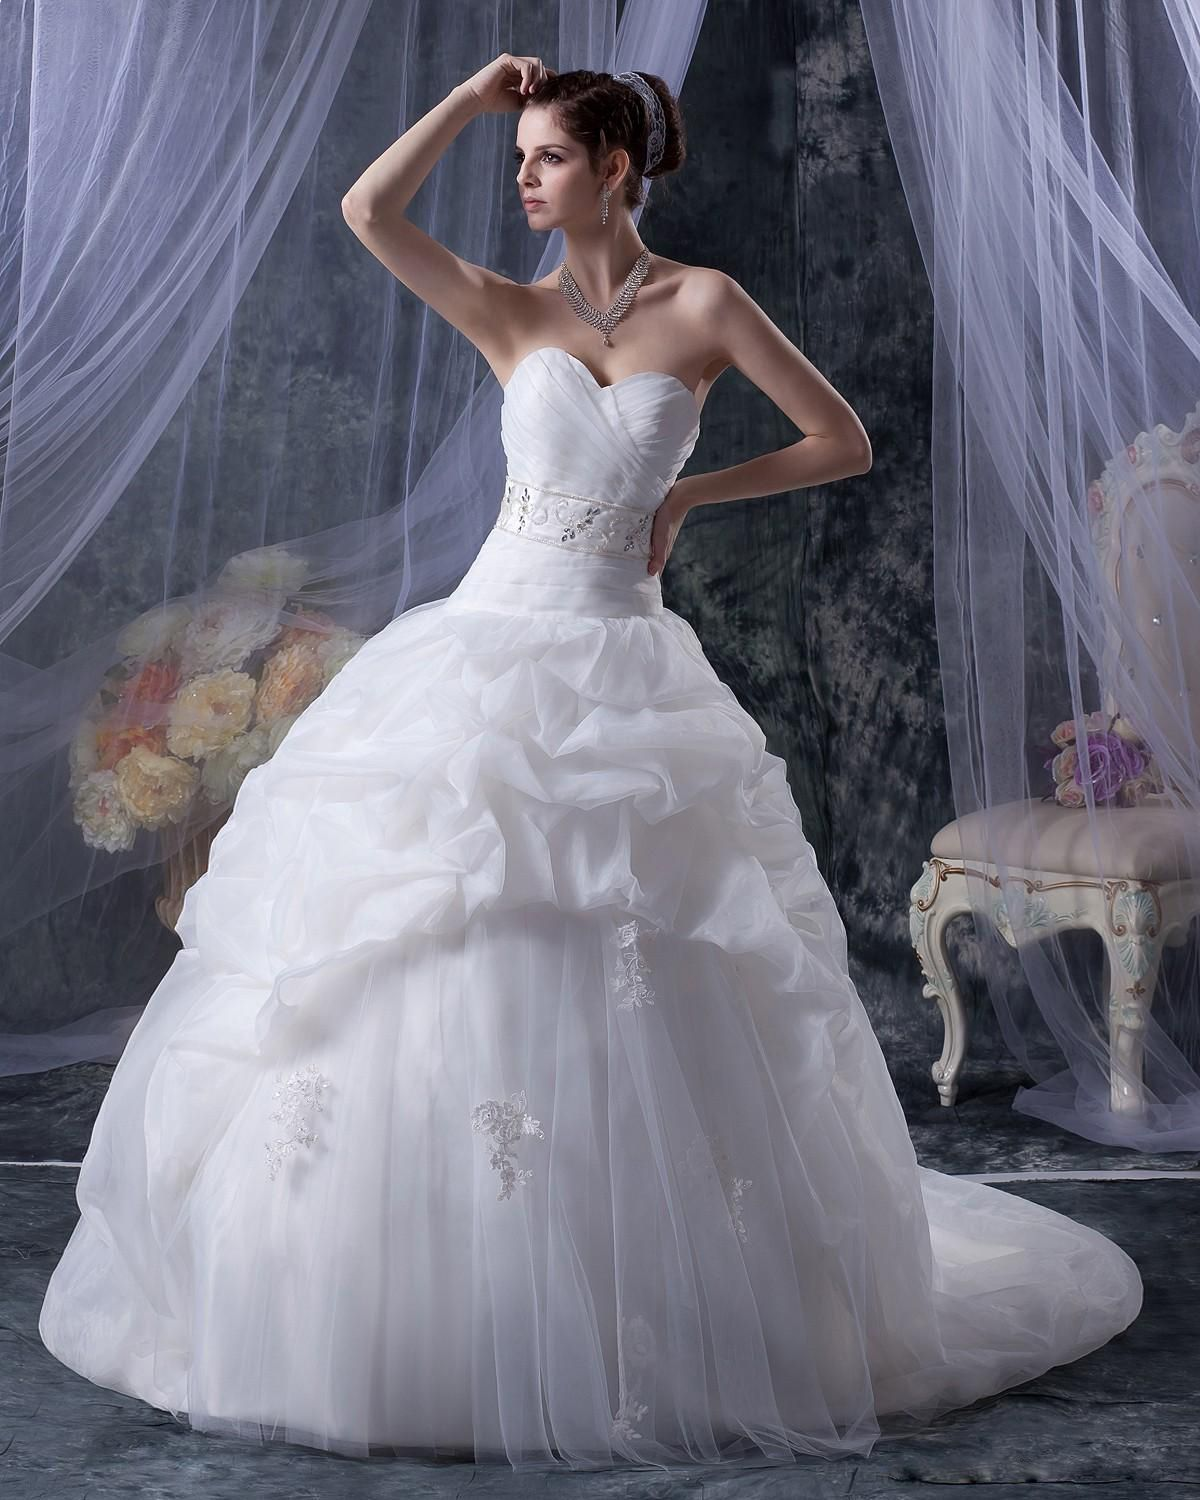 Wedding Dress Ideas: Best 25+ Ball Gown Wedding Ideas On Pinterest